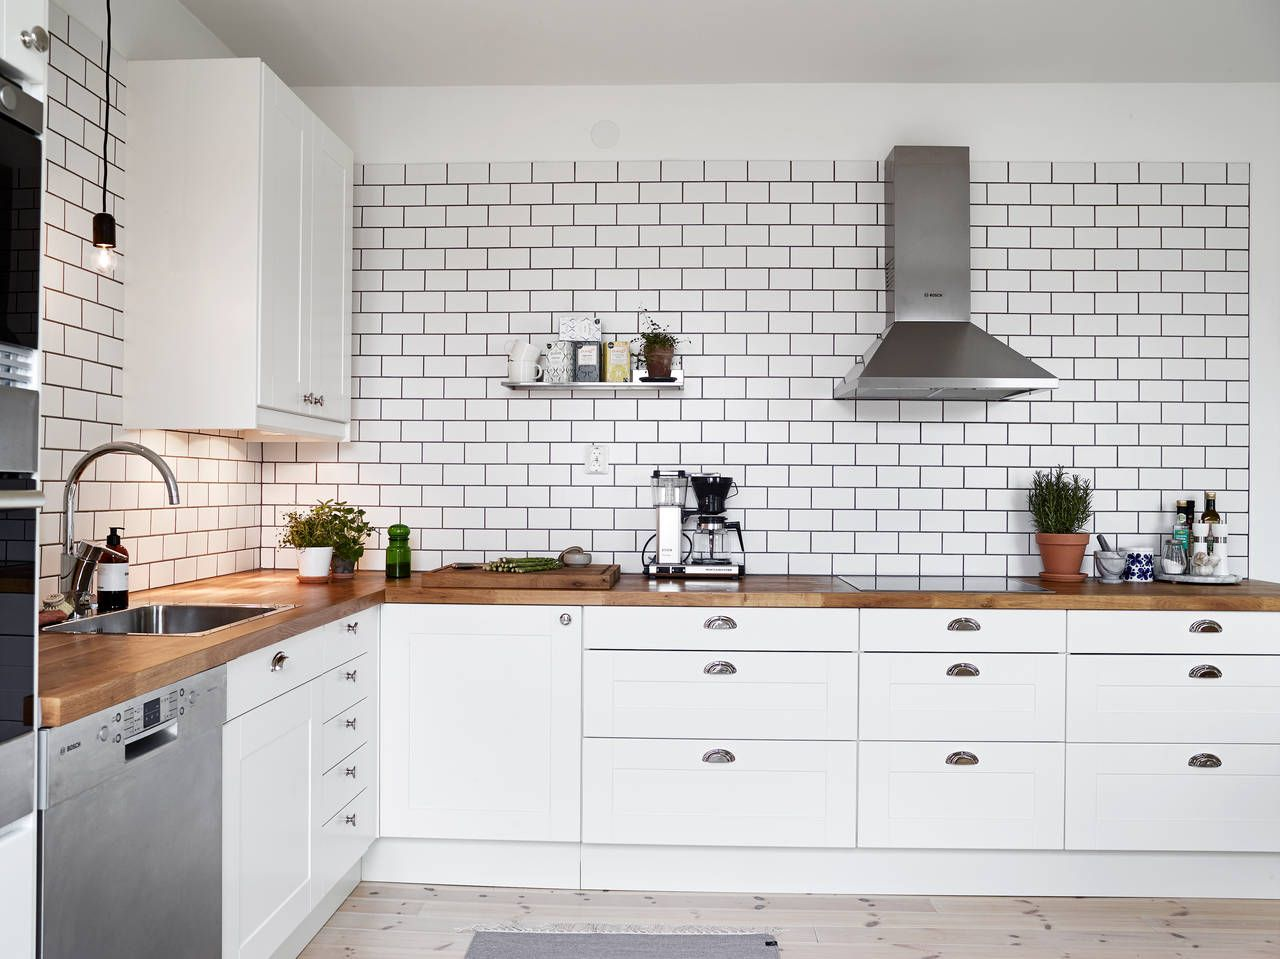 Tiled Kitchen A White Tiles Black Grout Kind Of Kitchen Coco Lapine Design